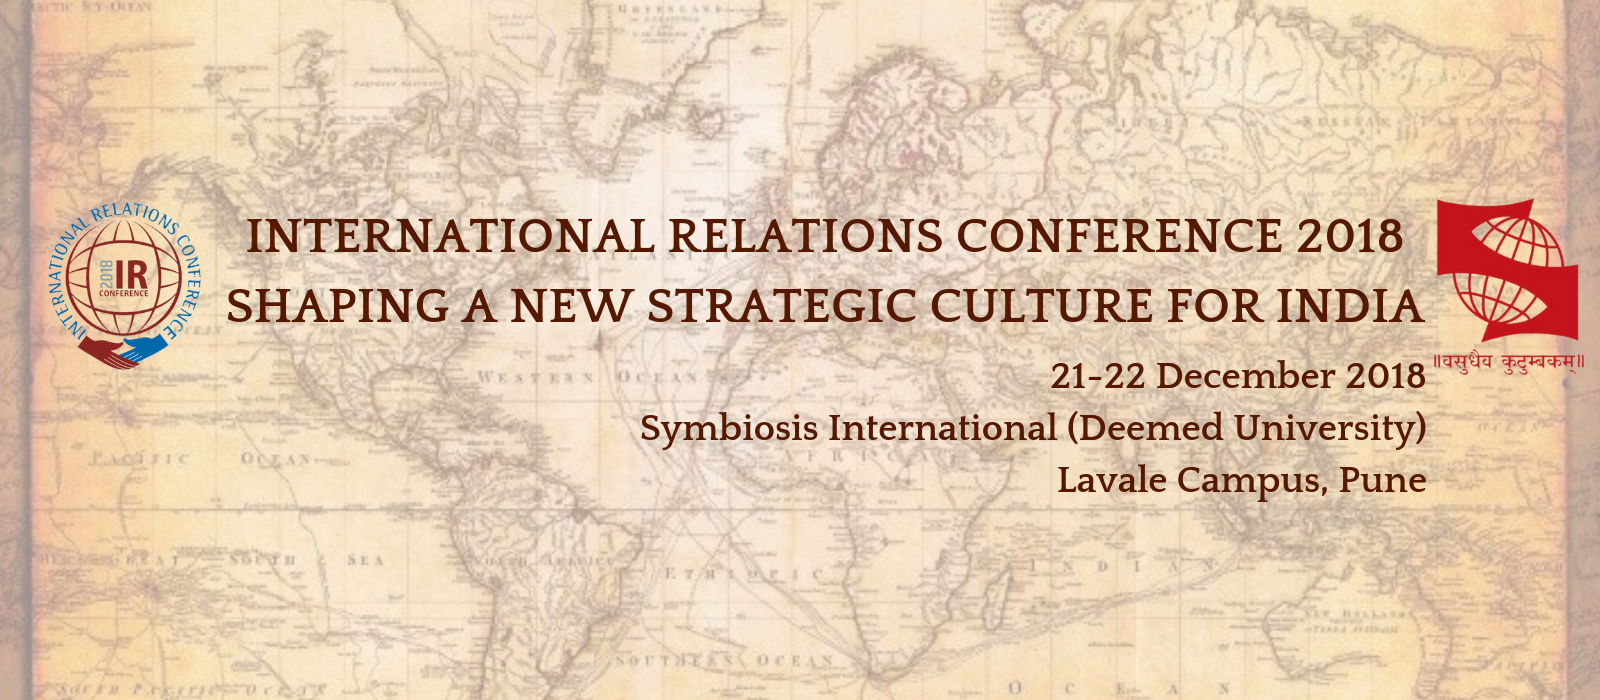 International Relations Conference 2018, Pune - Shaping a New Strategic Culture For India